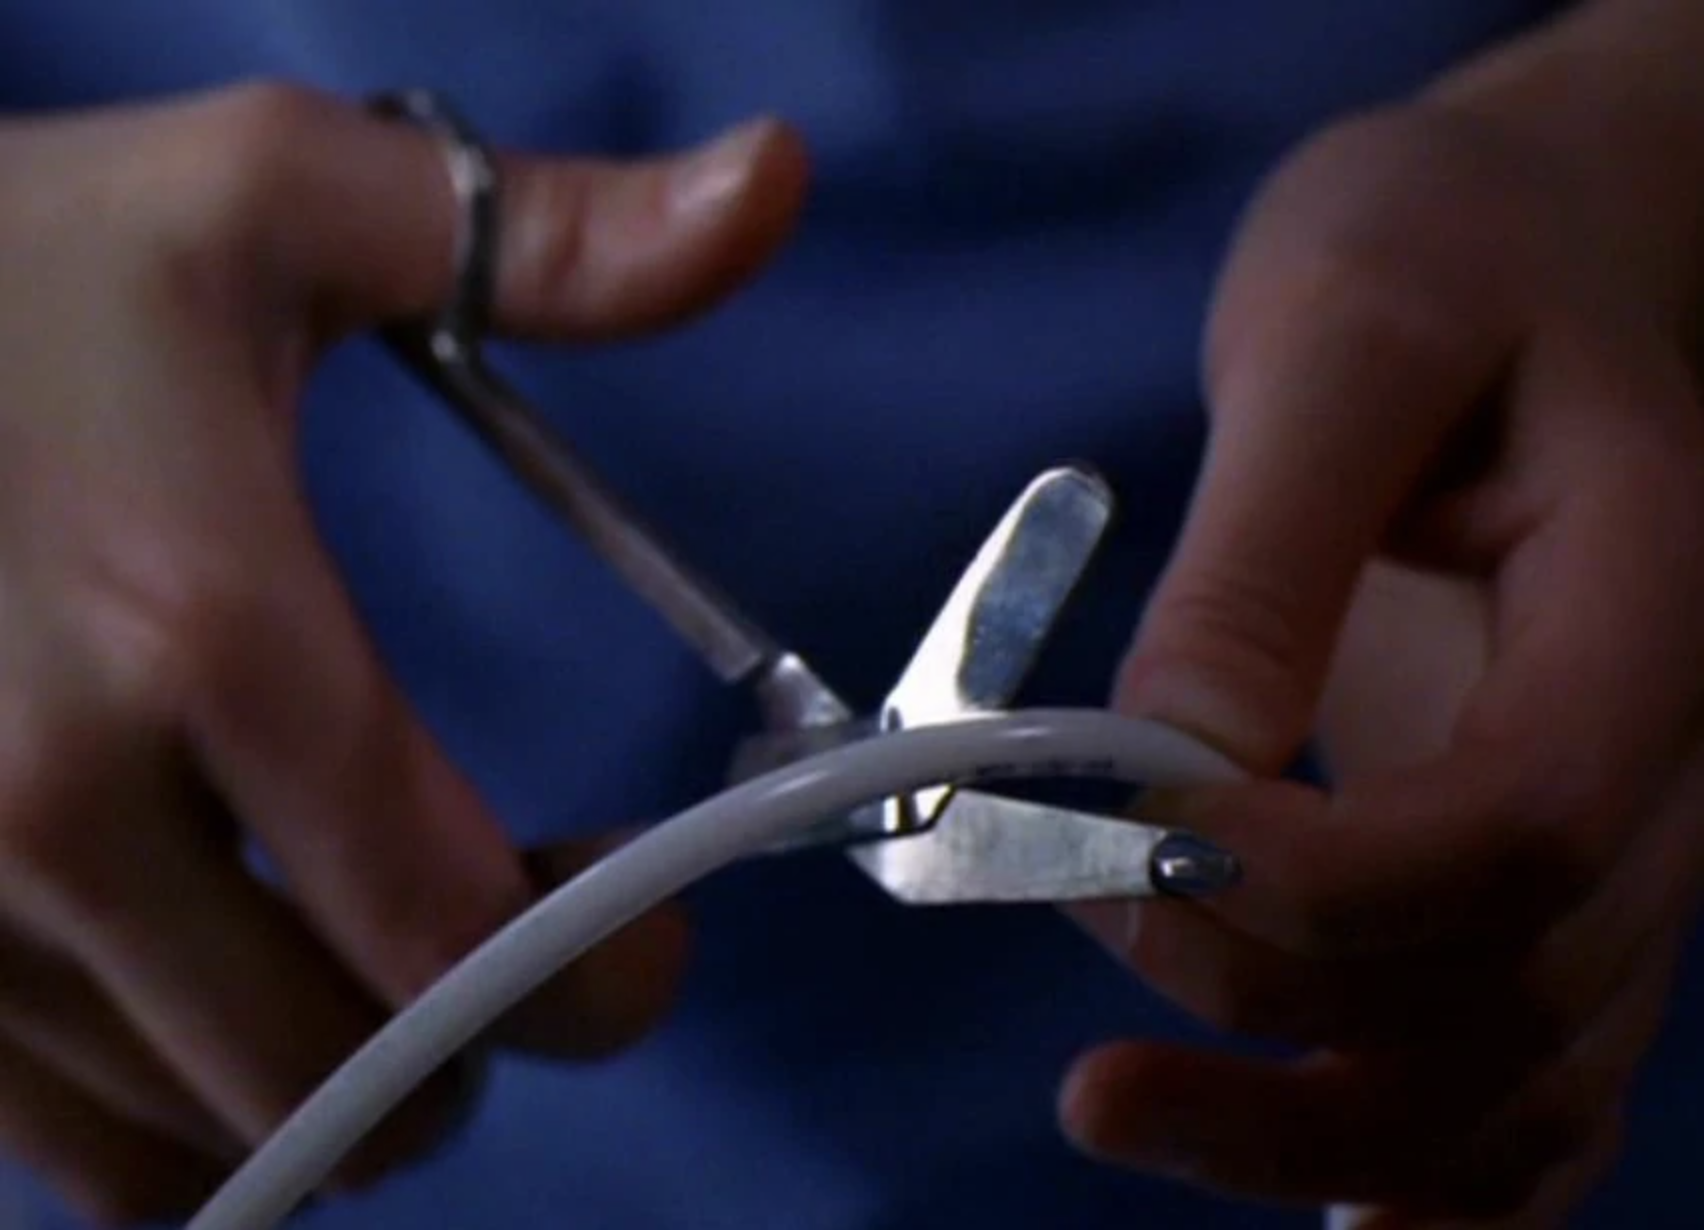 A LVAD wire in a hospital